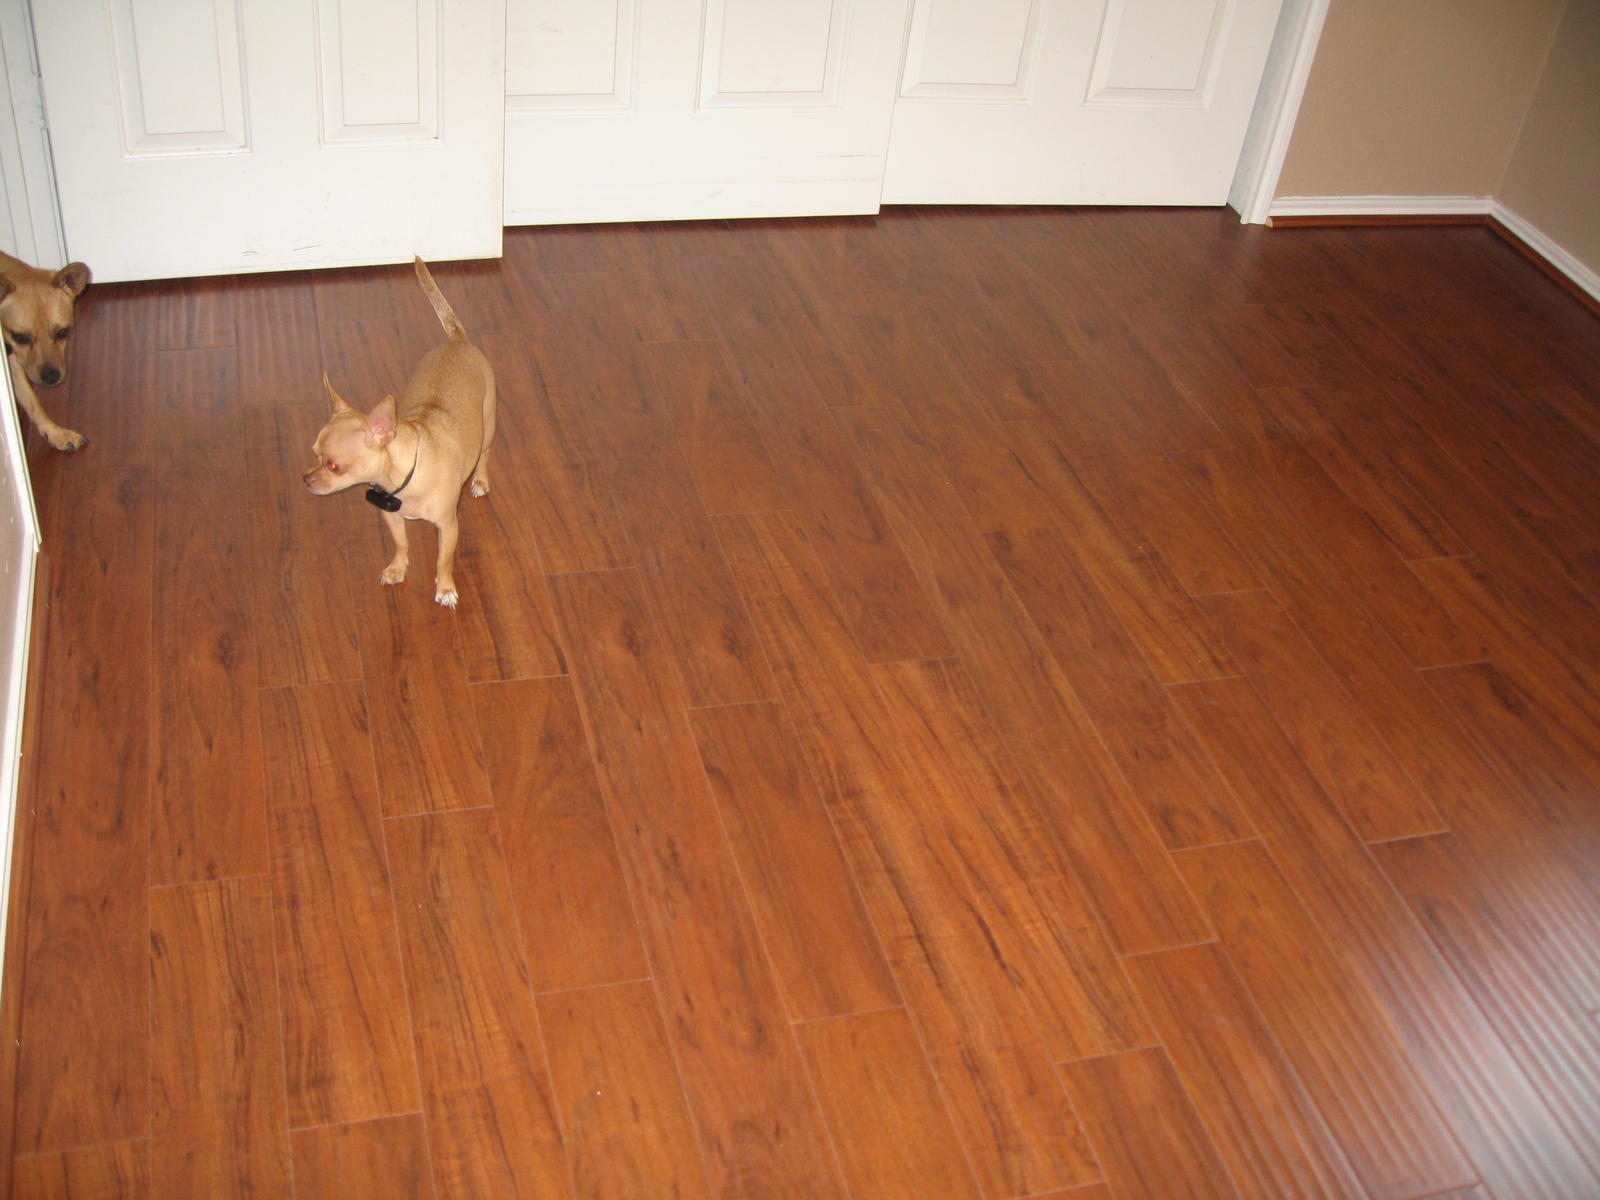 Laminate flooring best layout laminate flooring for Hardwood installation